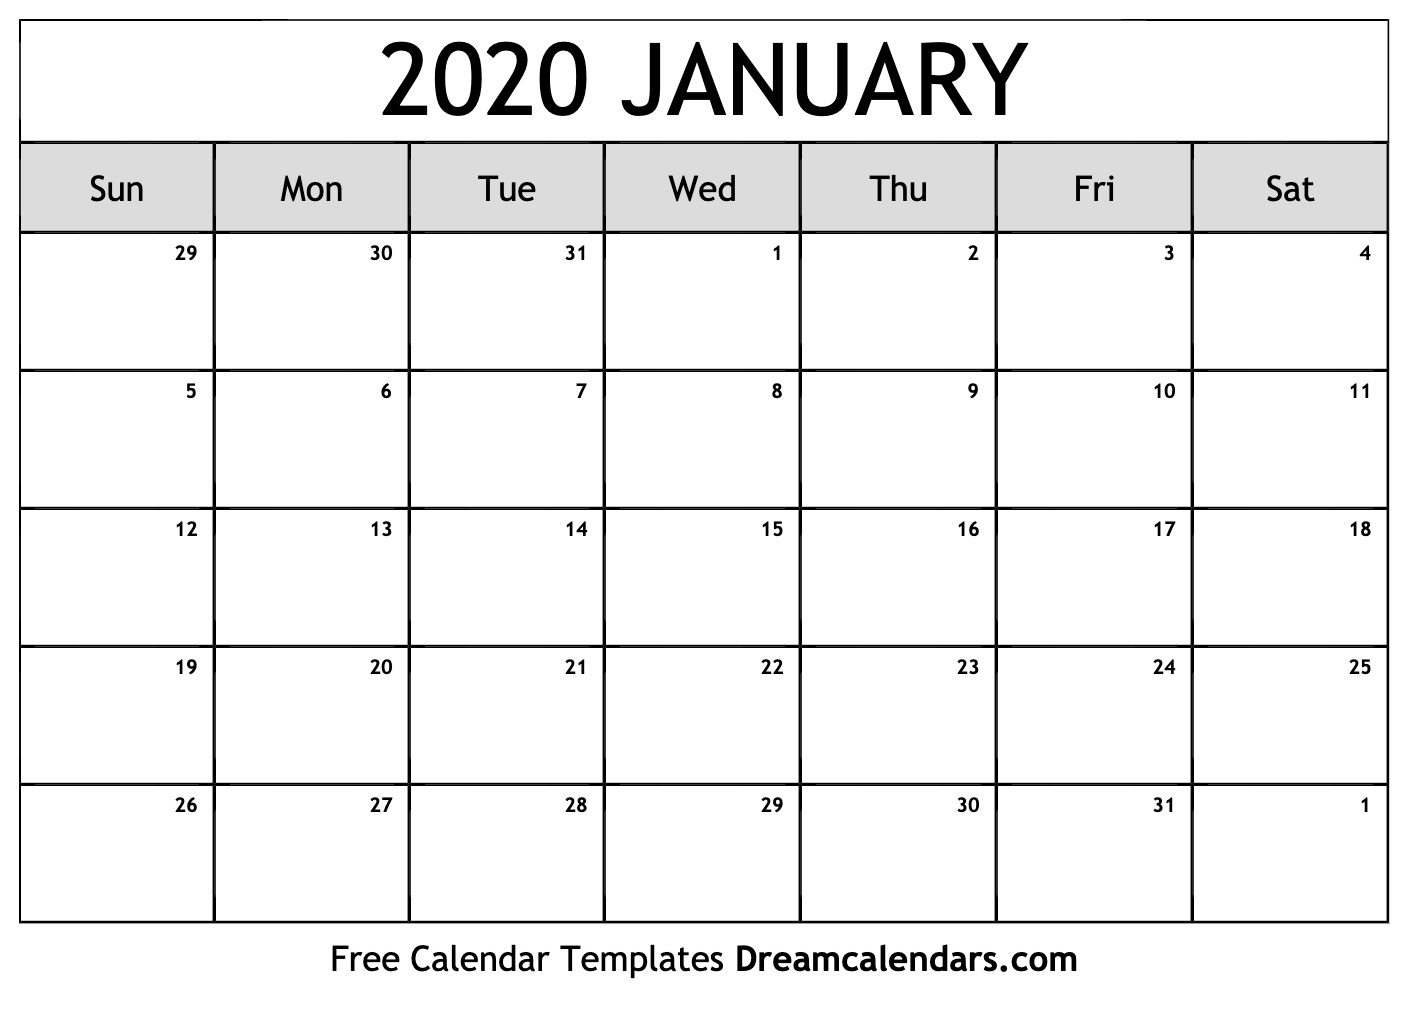 Jan 2020 Calendar Template  Yatay.horizonconsulting.co with regard to January 2020 Calendar 123Calendars